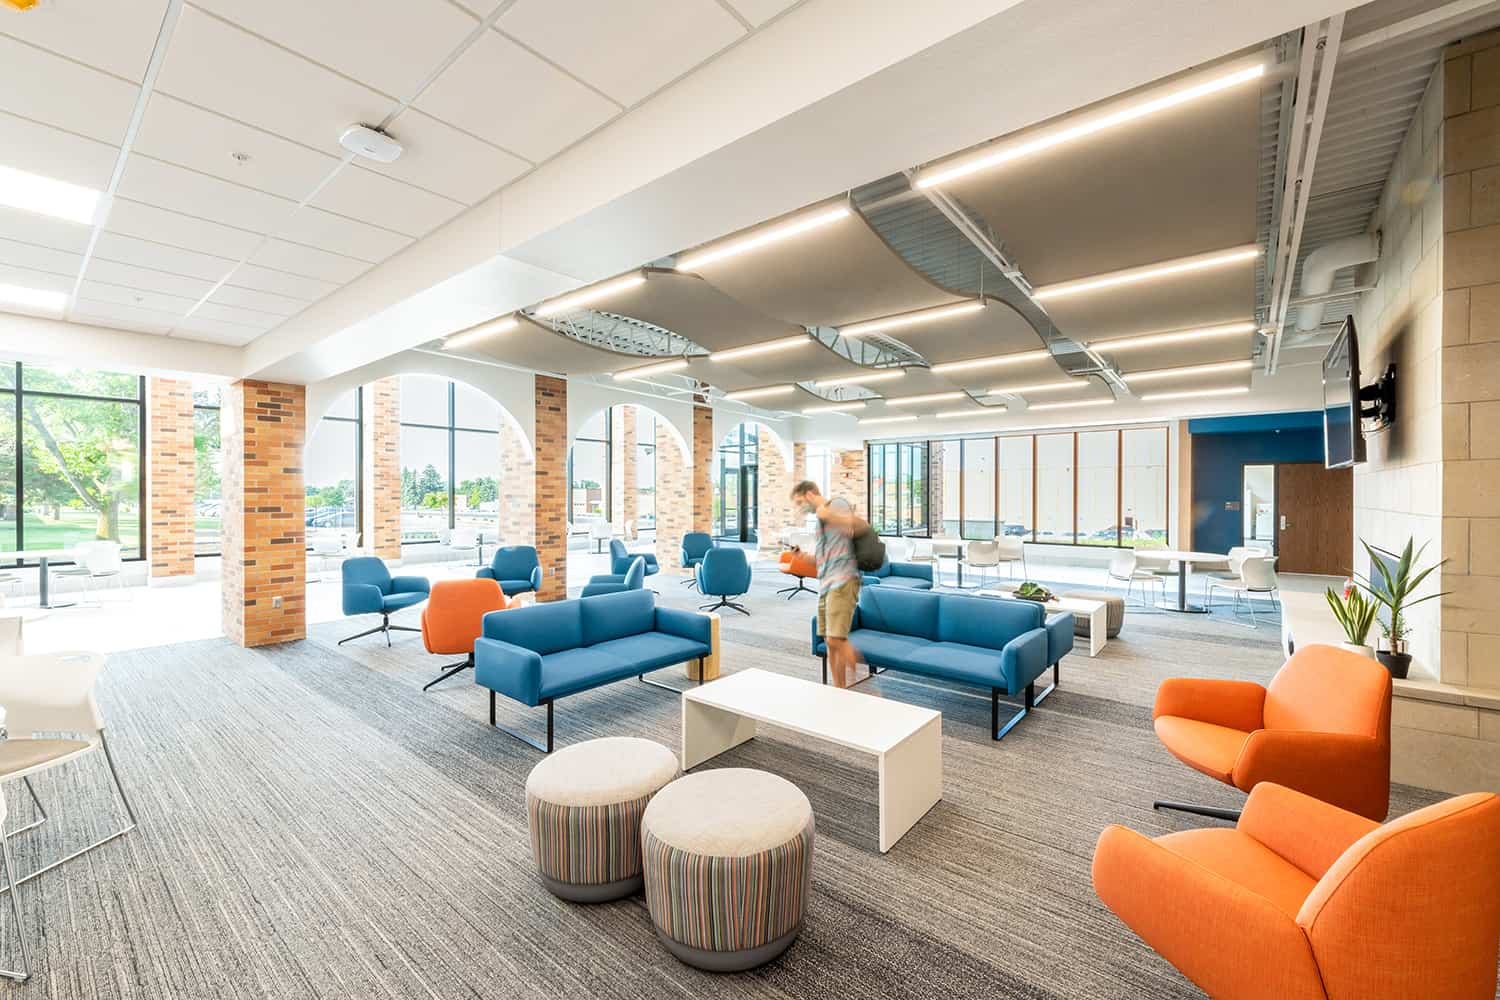 The Commons Area in the Healthcare Center of Learning with open seating options, high ceilings, abundant daylight, and access to labs and classrooms.